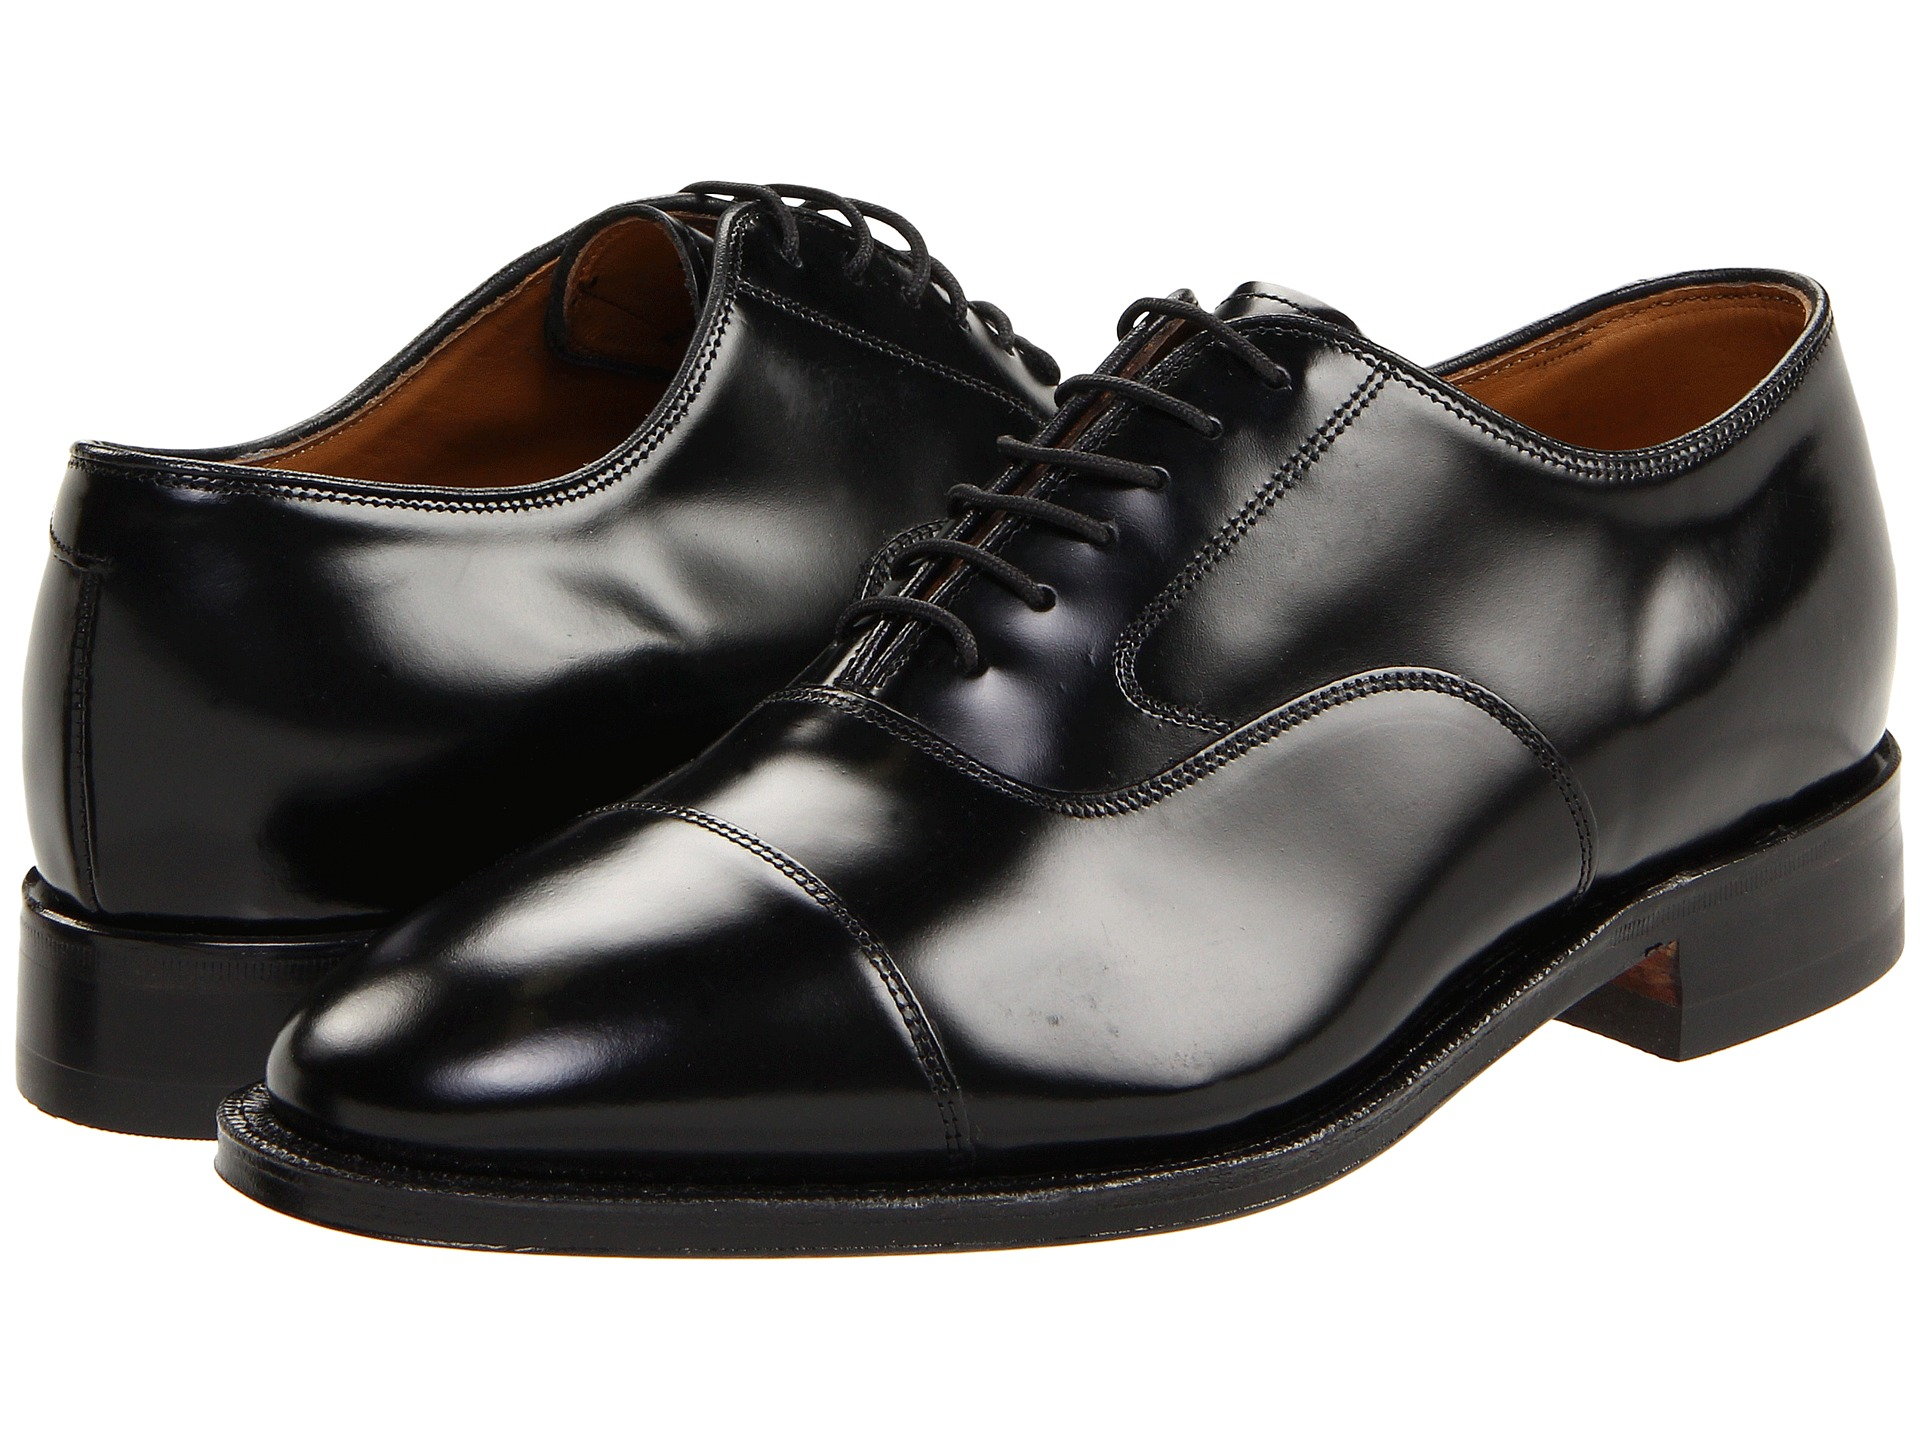 Shop for men's J. Murphy by Johnston & Murphy online at Men's Wearhouse. Browse the latest Shoes styles & selection for men from top brands & designers from the leader in men's apparel. Available in regular sizes and big & tall sizes. Enjoy FREE Shipping on orders over $50+!